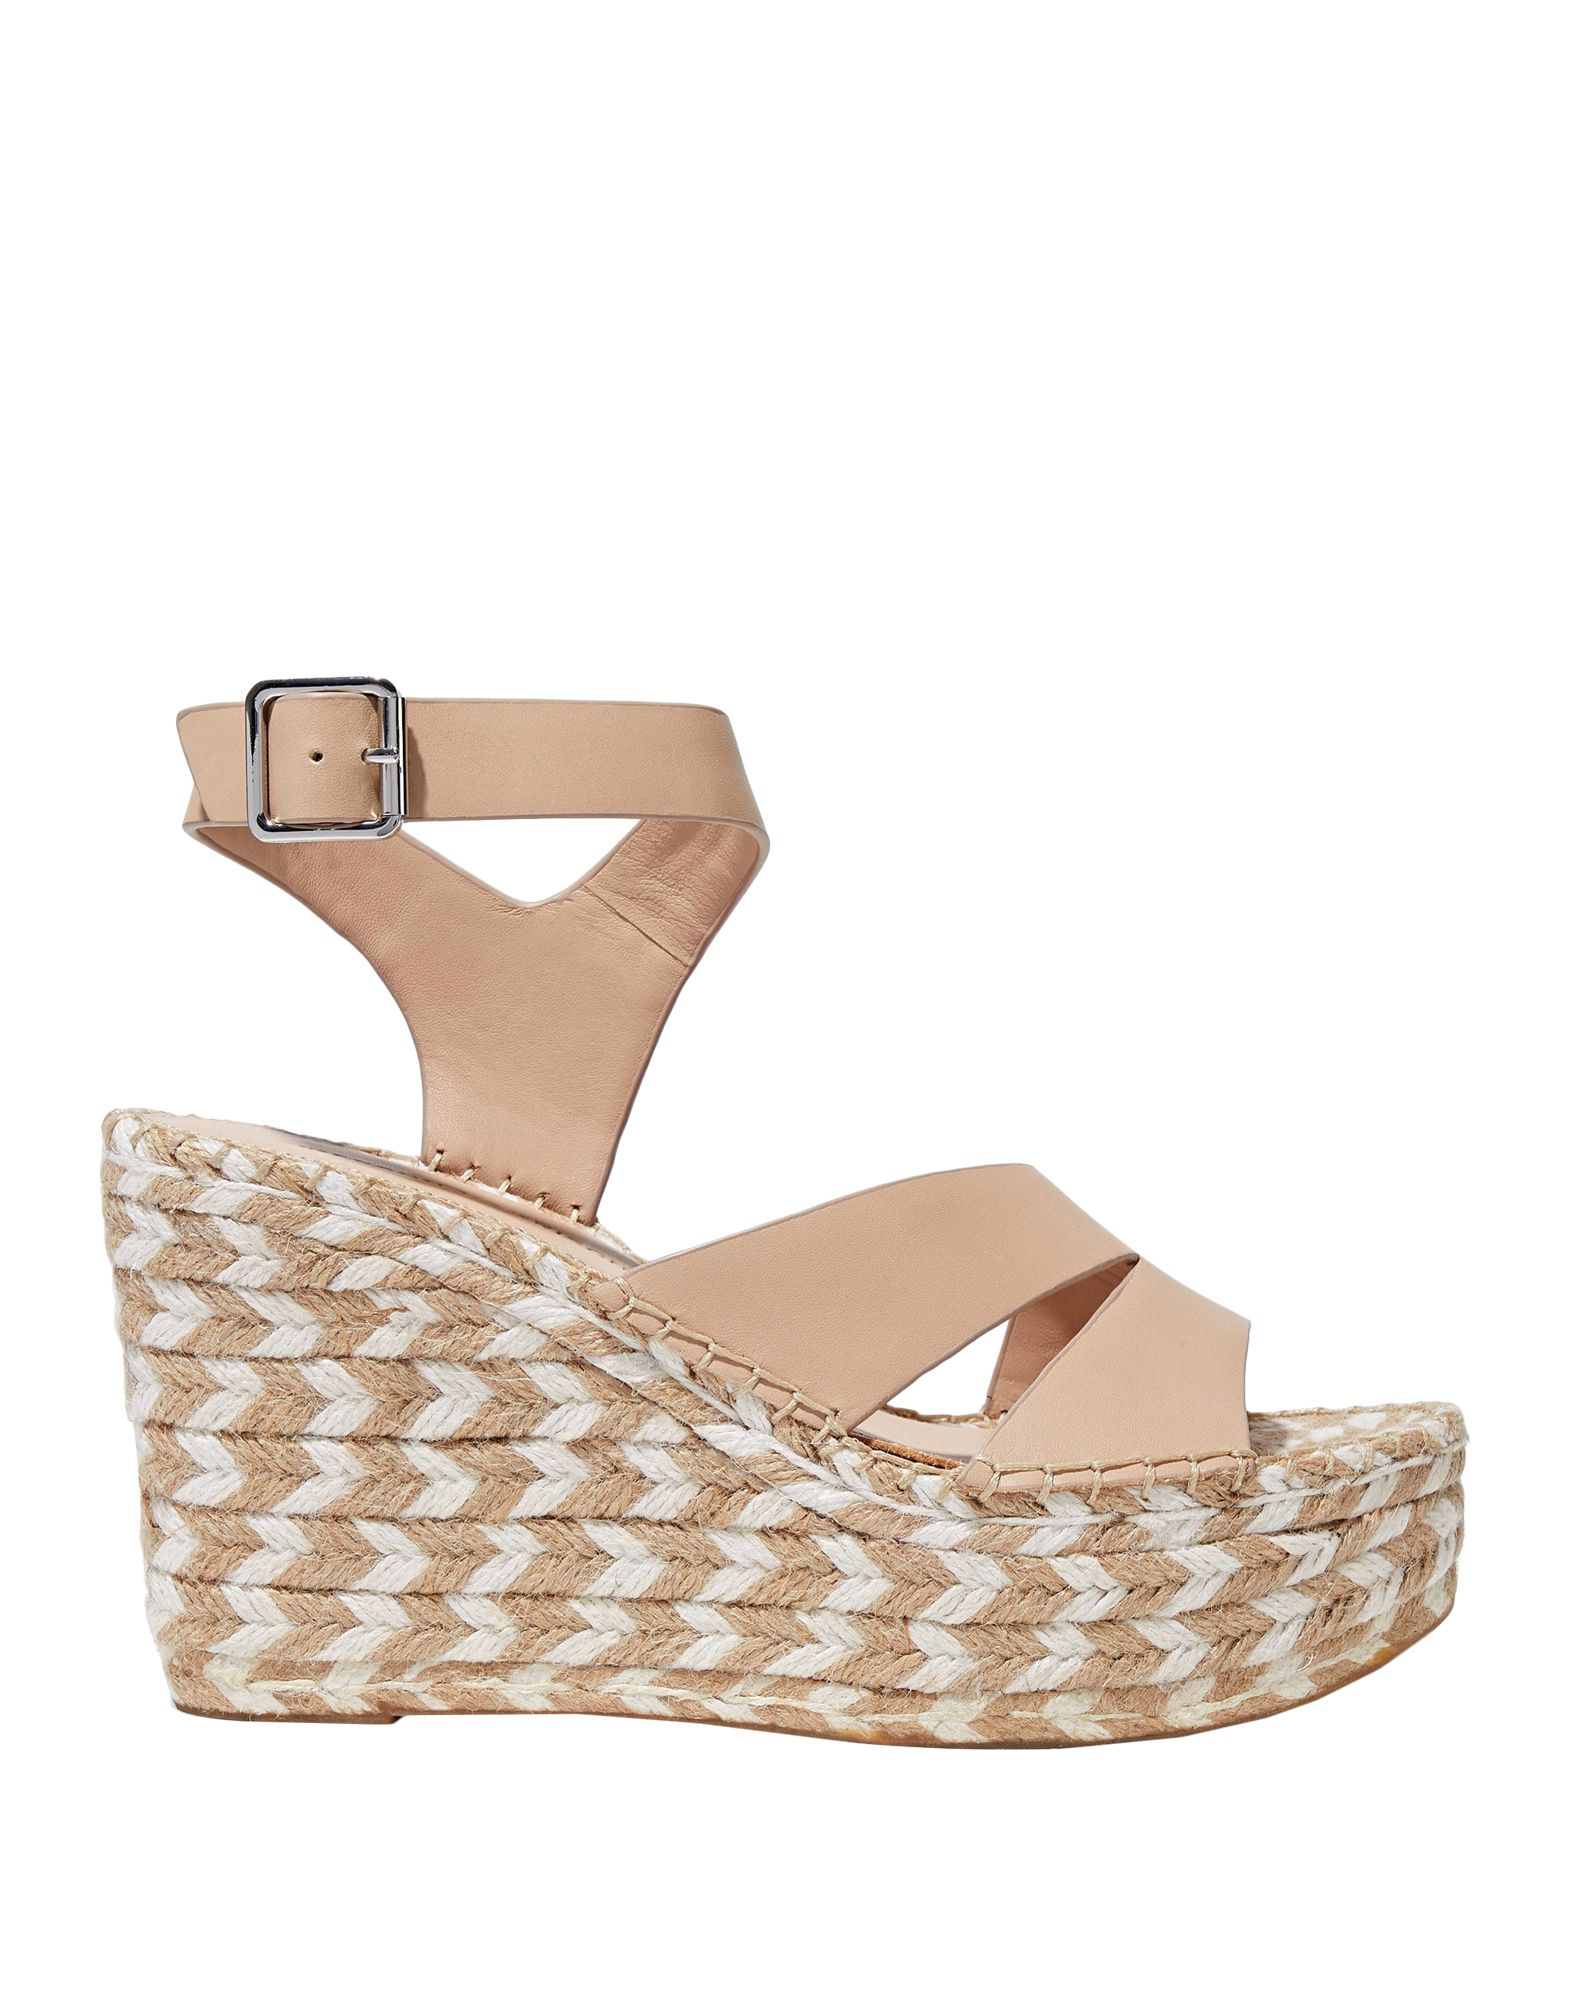 SIGERSON MORRISON Sandals - Item 11564944